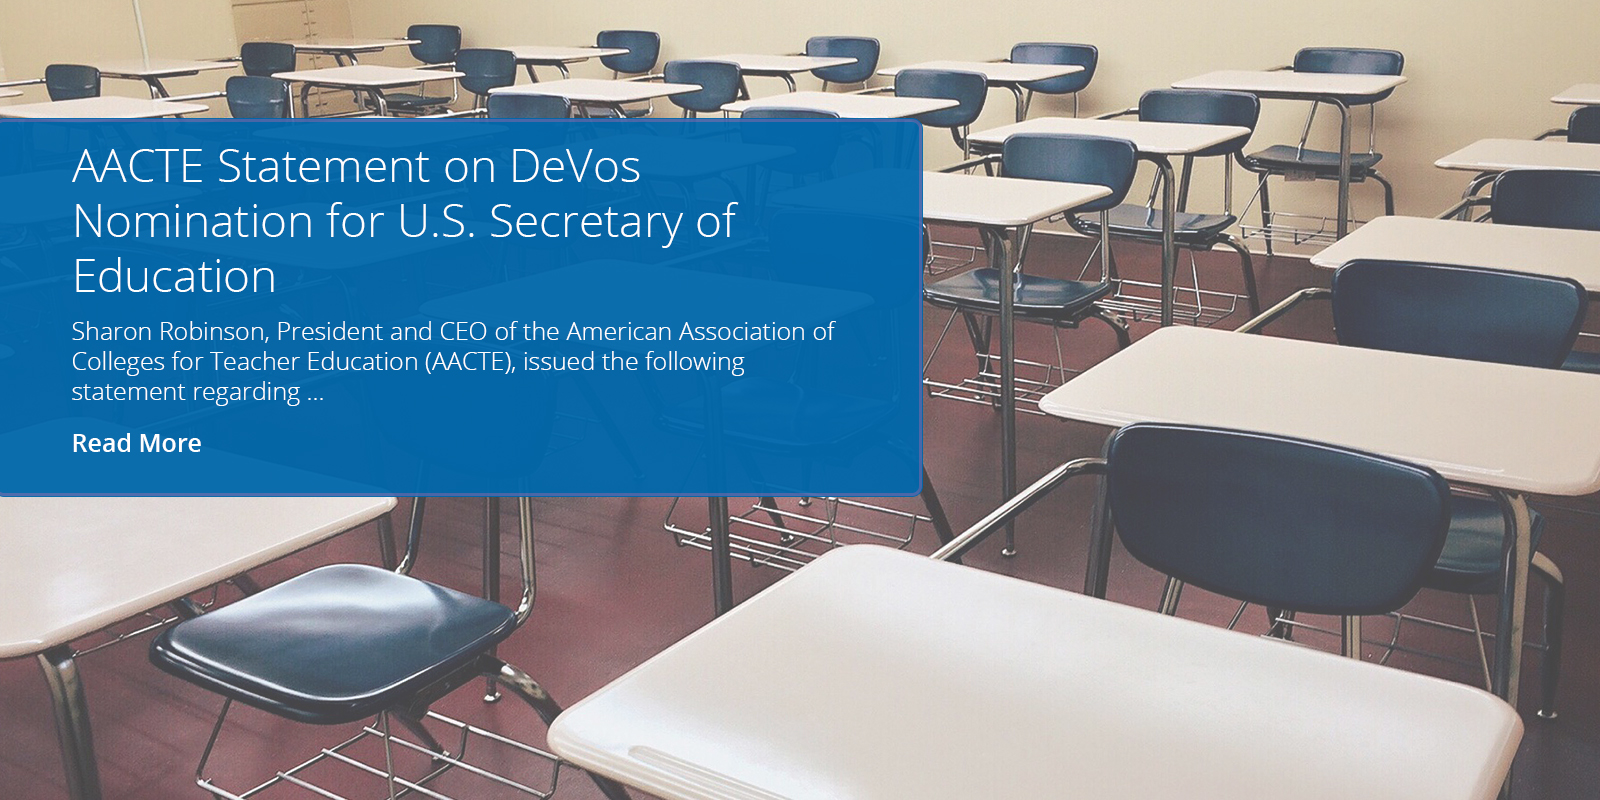 AACTE Statement on DeVos Nomination for U.S. Secretary of Education